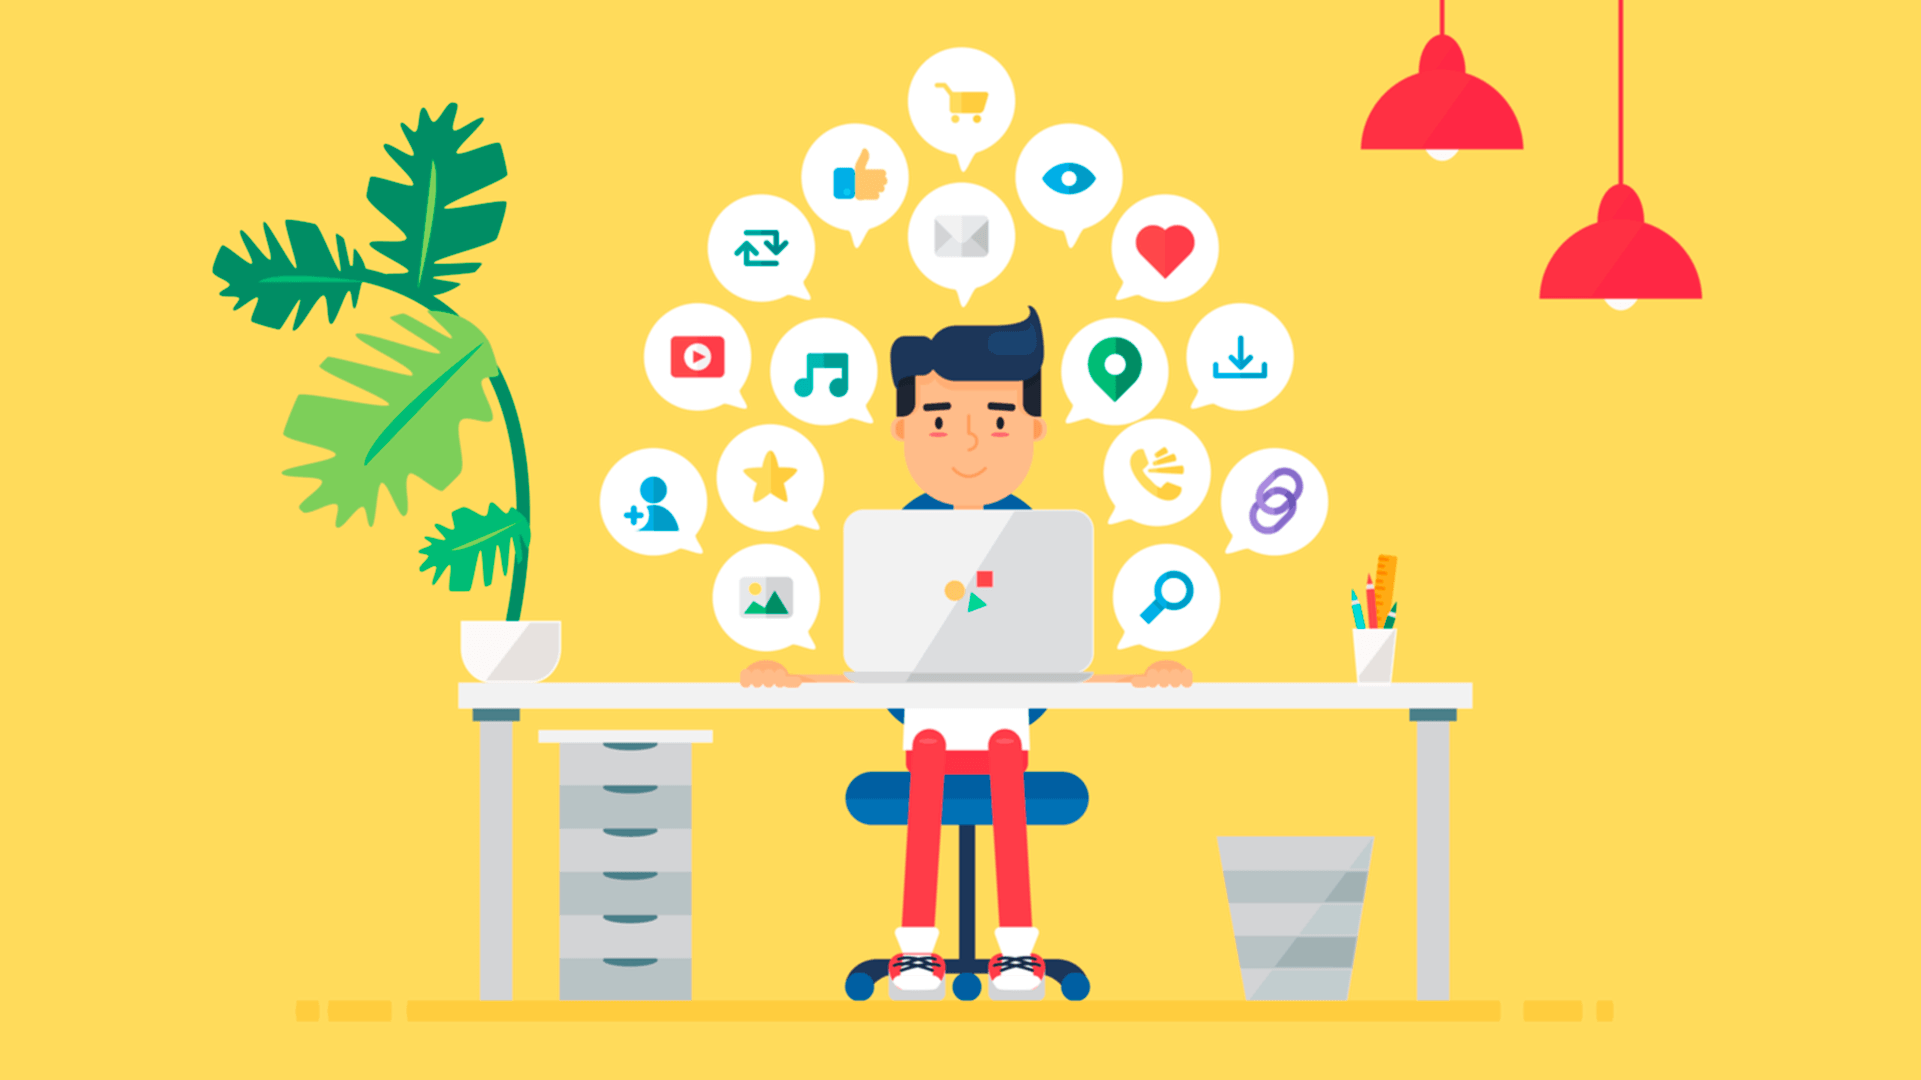 Top 7 Must Have Social Media Management Tools In 2020